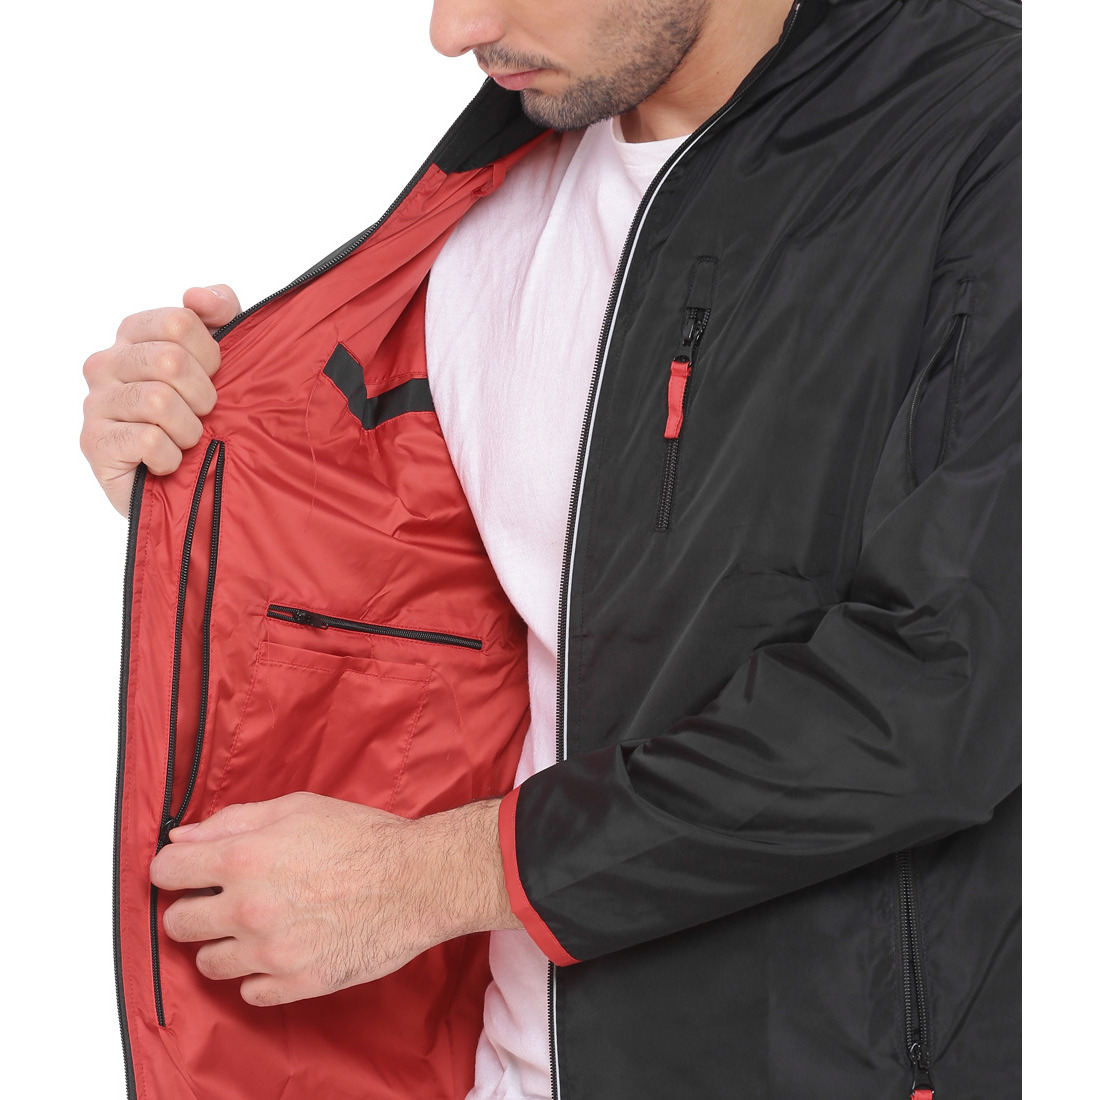 VERSATYL - World's 1st Multi-Utility Stylish Travel Jacket with 18 pockets and 29 features for Men and Women - L